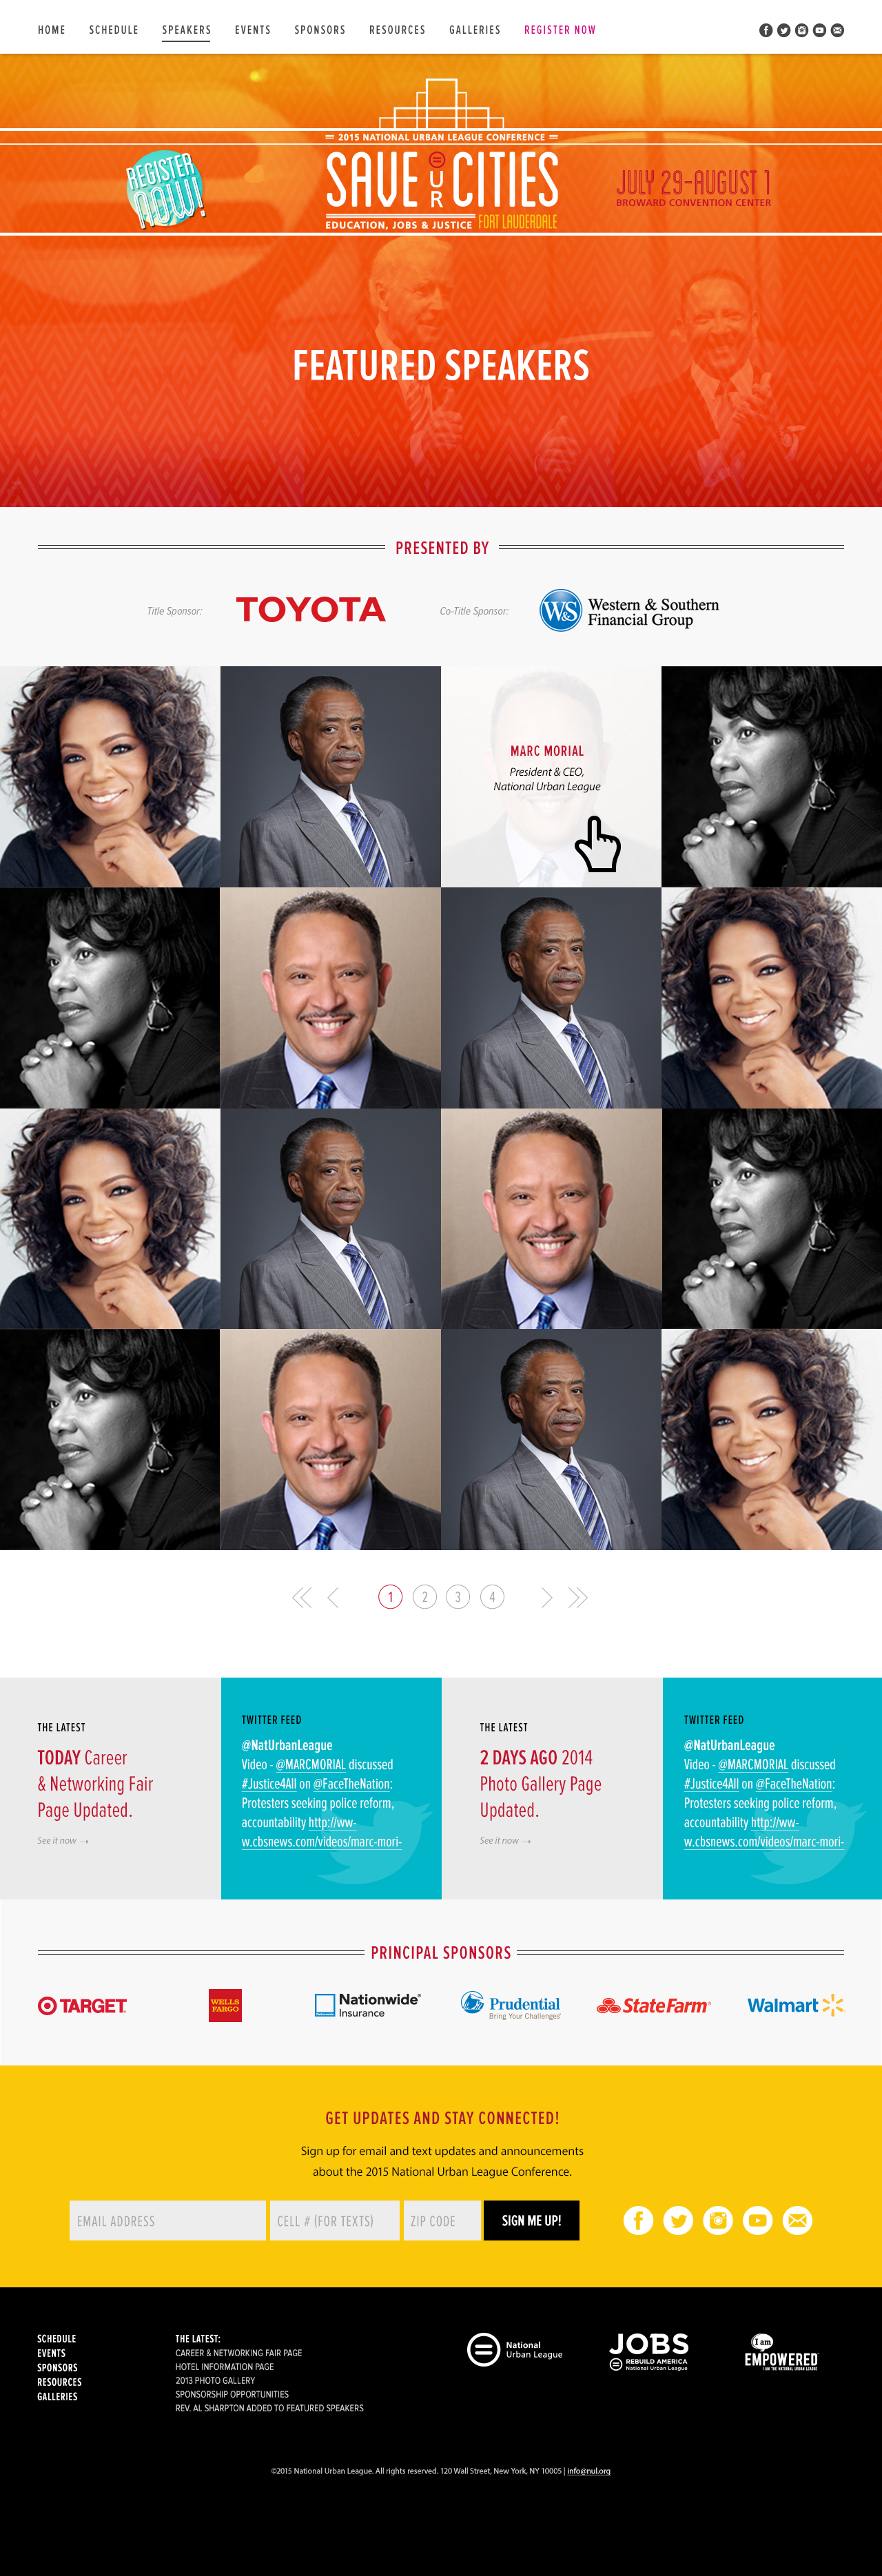 julierado-2015-national-urban-league-conference-collateral--website-featured-speakers.jpg